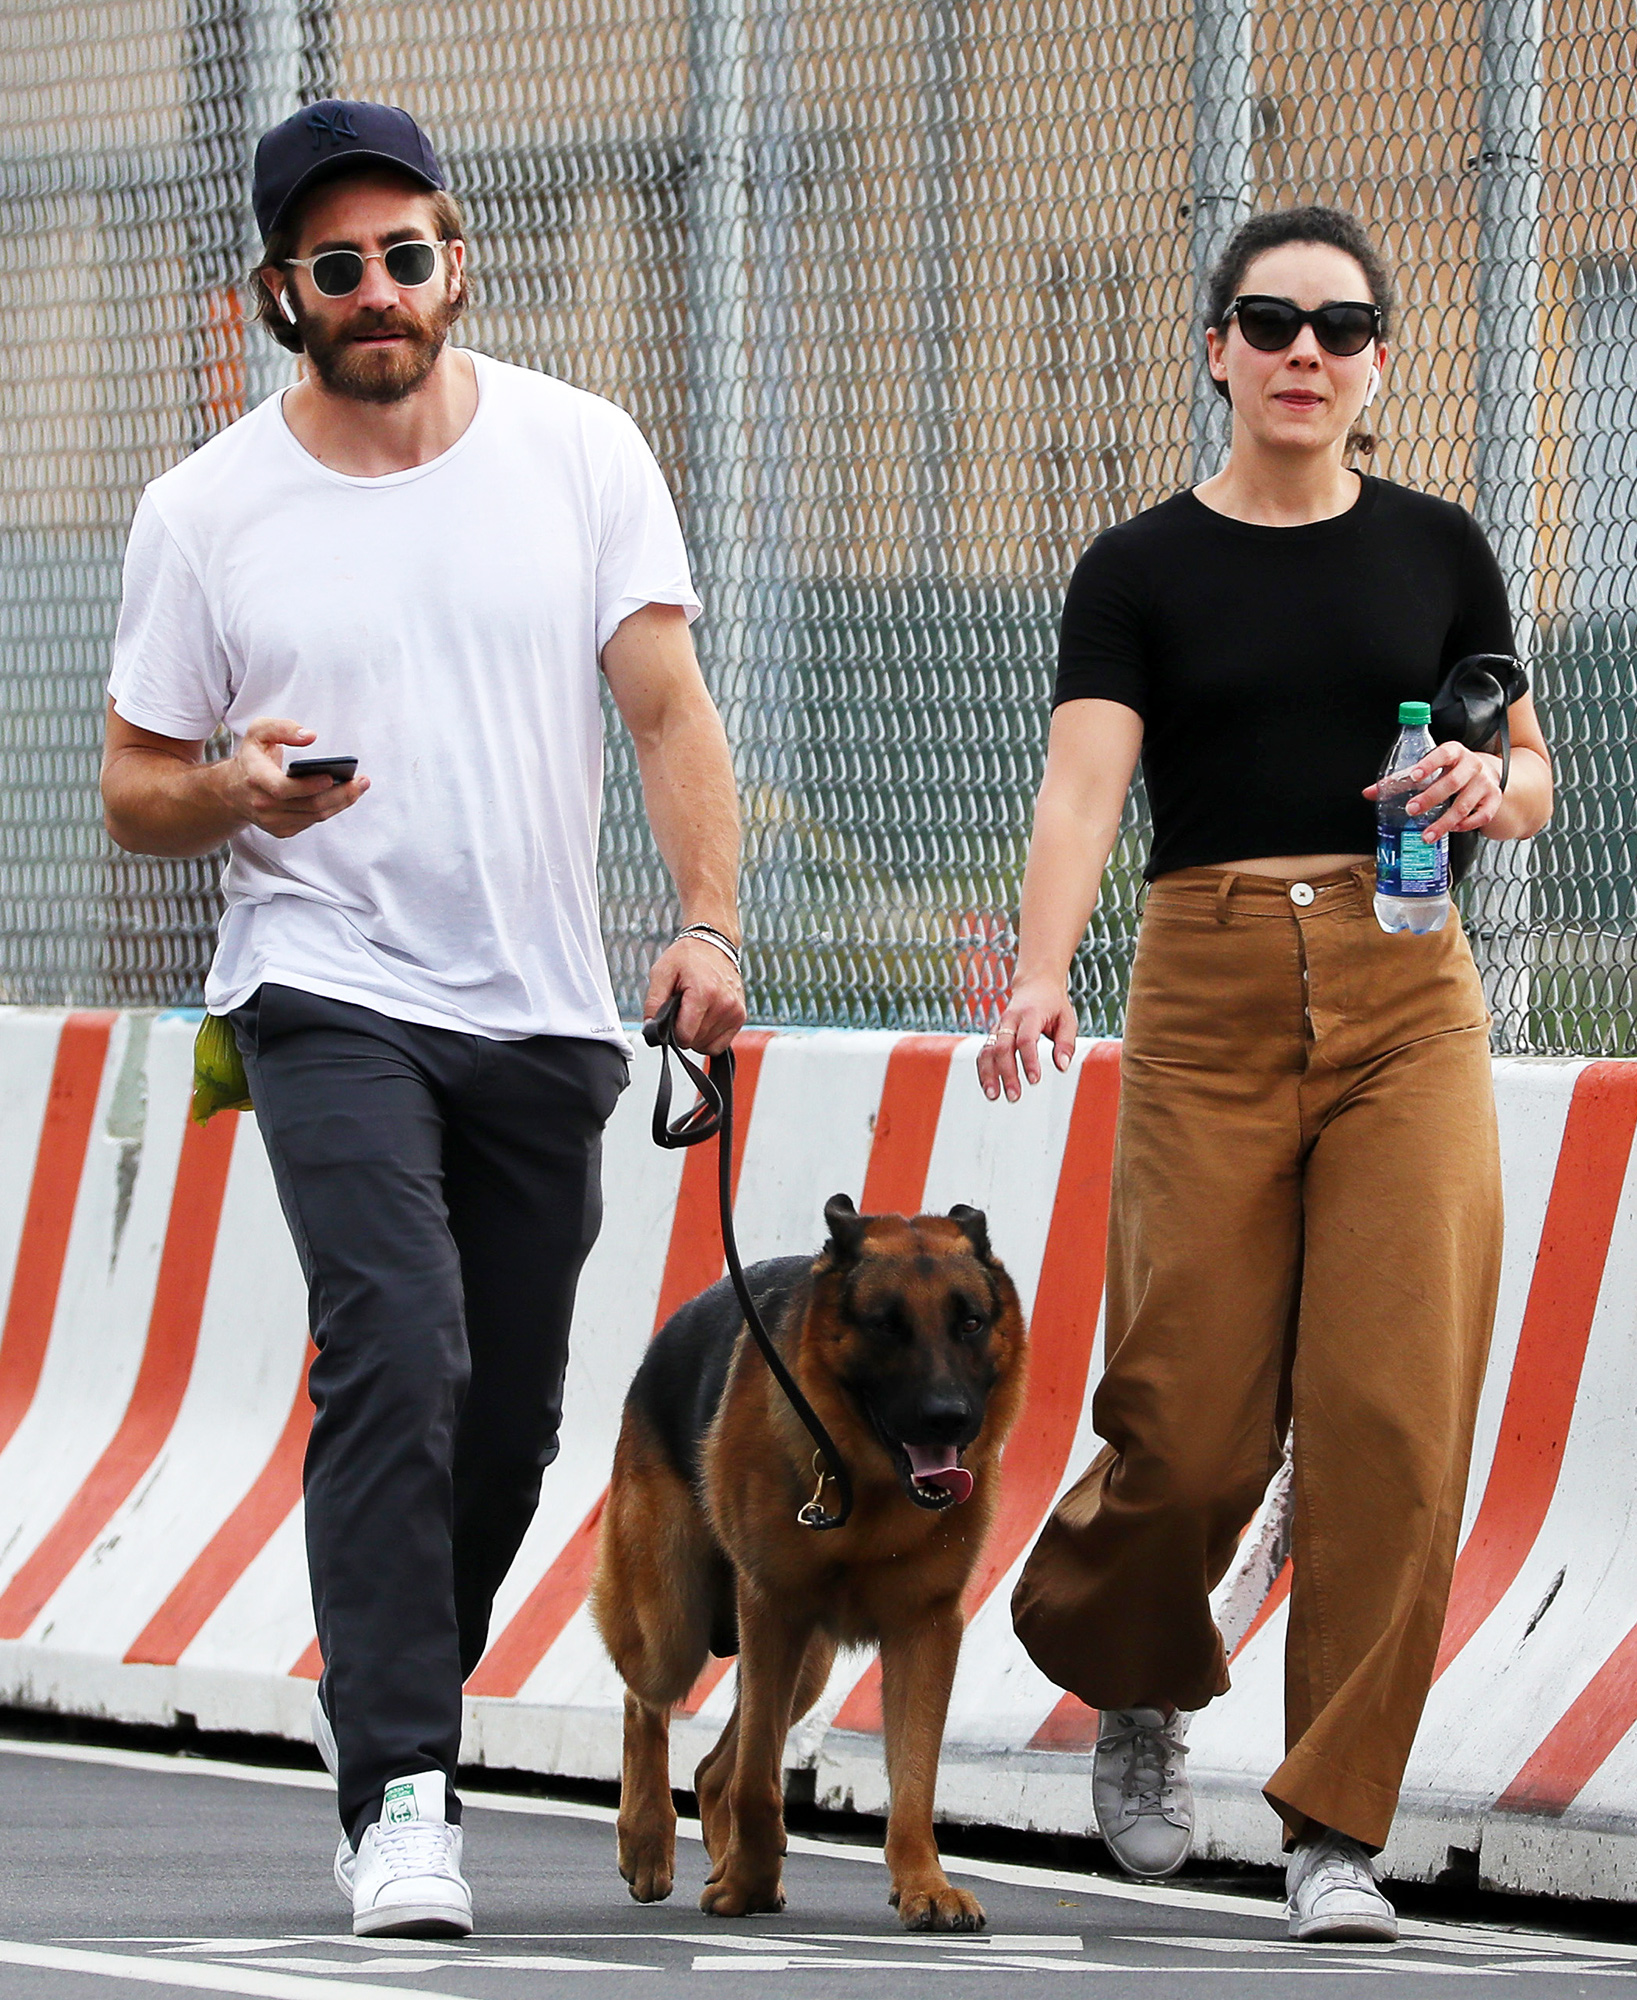 EXCLUSIVE: Jake Gyllenhaal and Friend, Greta Caruso Wear Matching Adidas Trainers as they Walk Jakes's Beloved Pooch, Atticus.